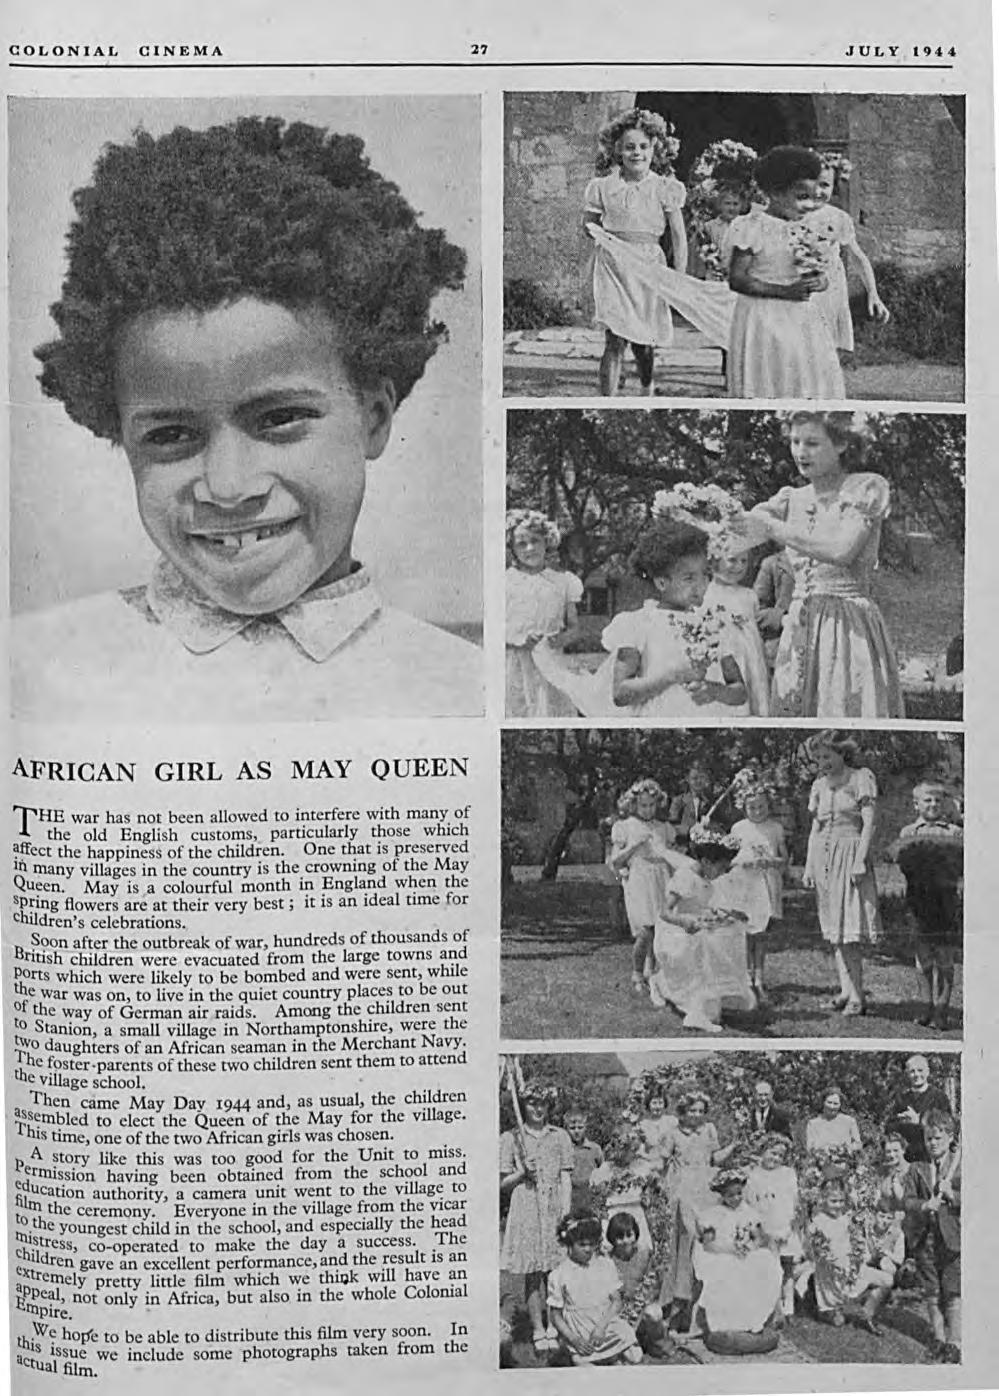 COLONIAL CINEMA 27 JULY 1944 AFRICAN GIRL AS MAY QUEEN THE war has not been allowed to interfere with many of the old English customs, particularly those which ~~ect the happiness of the children.